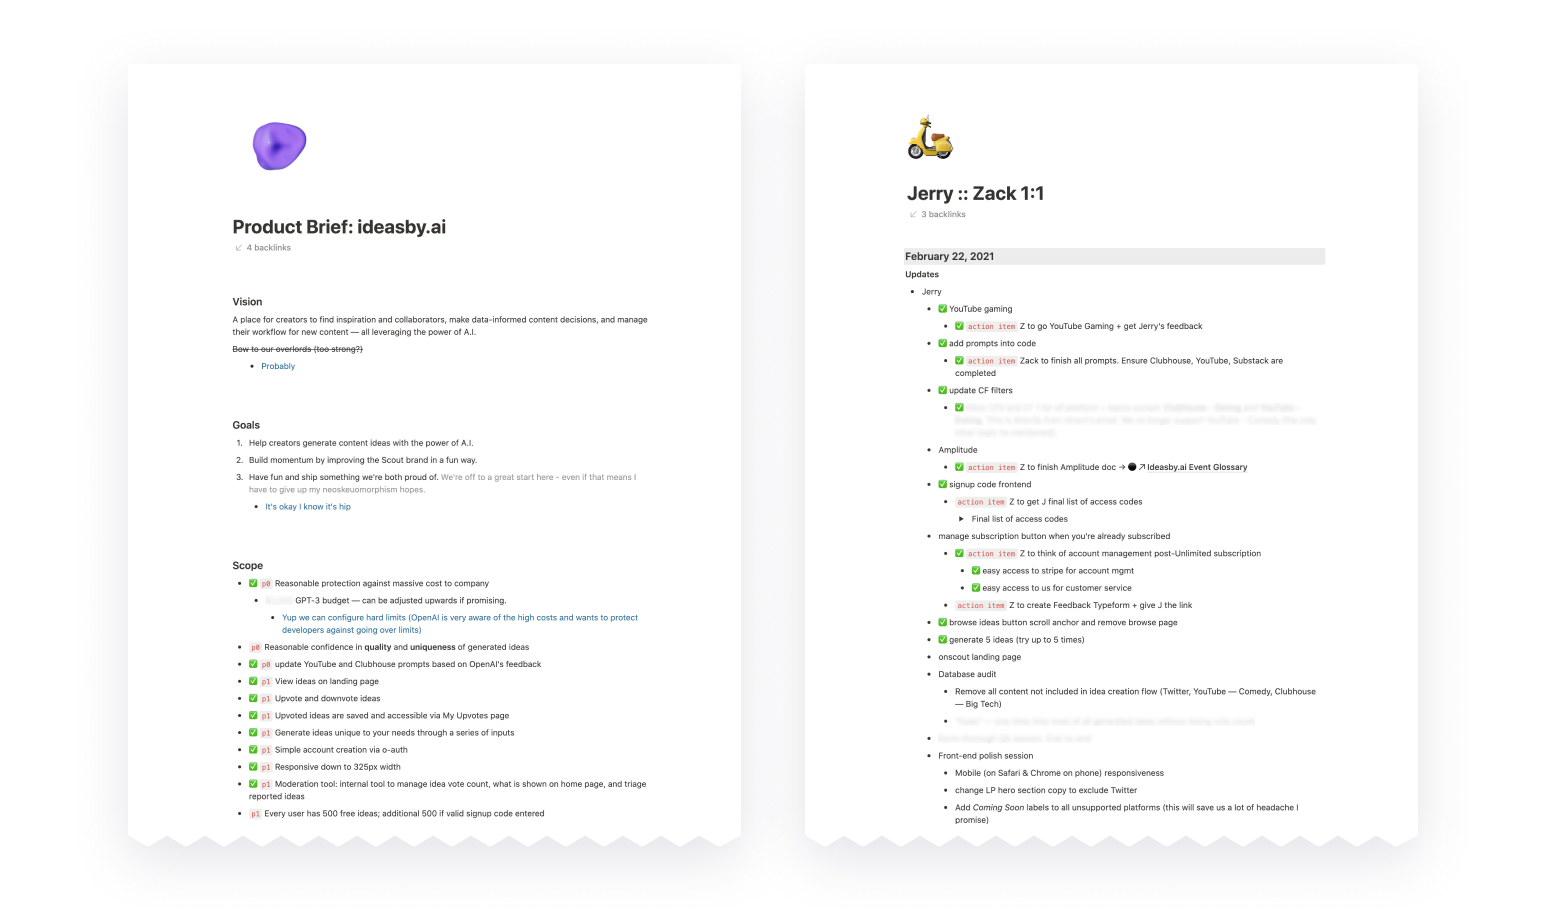 Real examples of a Product Brief (from a past product drop) and meeting notes. We value collaboration, clarity, documentation, and principled decision-making.